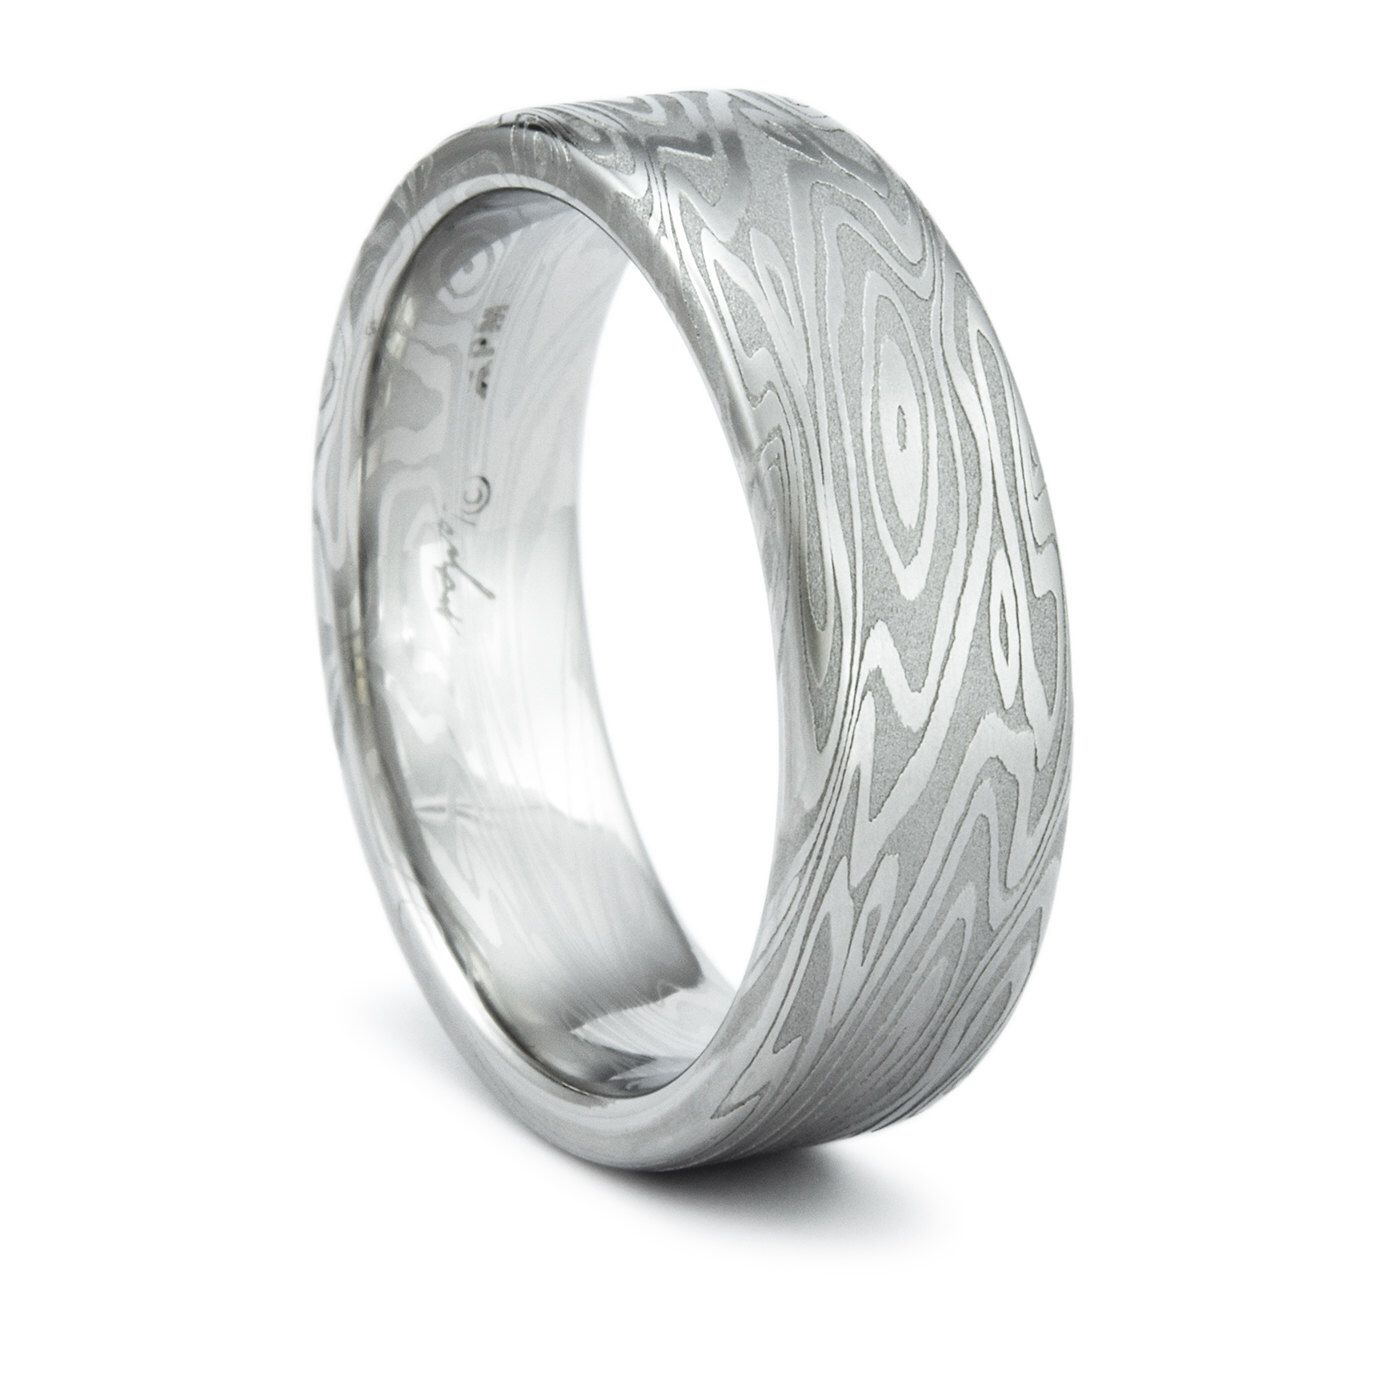 Damascus Ring Unique Men s Wedding Band Twisted Wood Grain Pattern